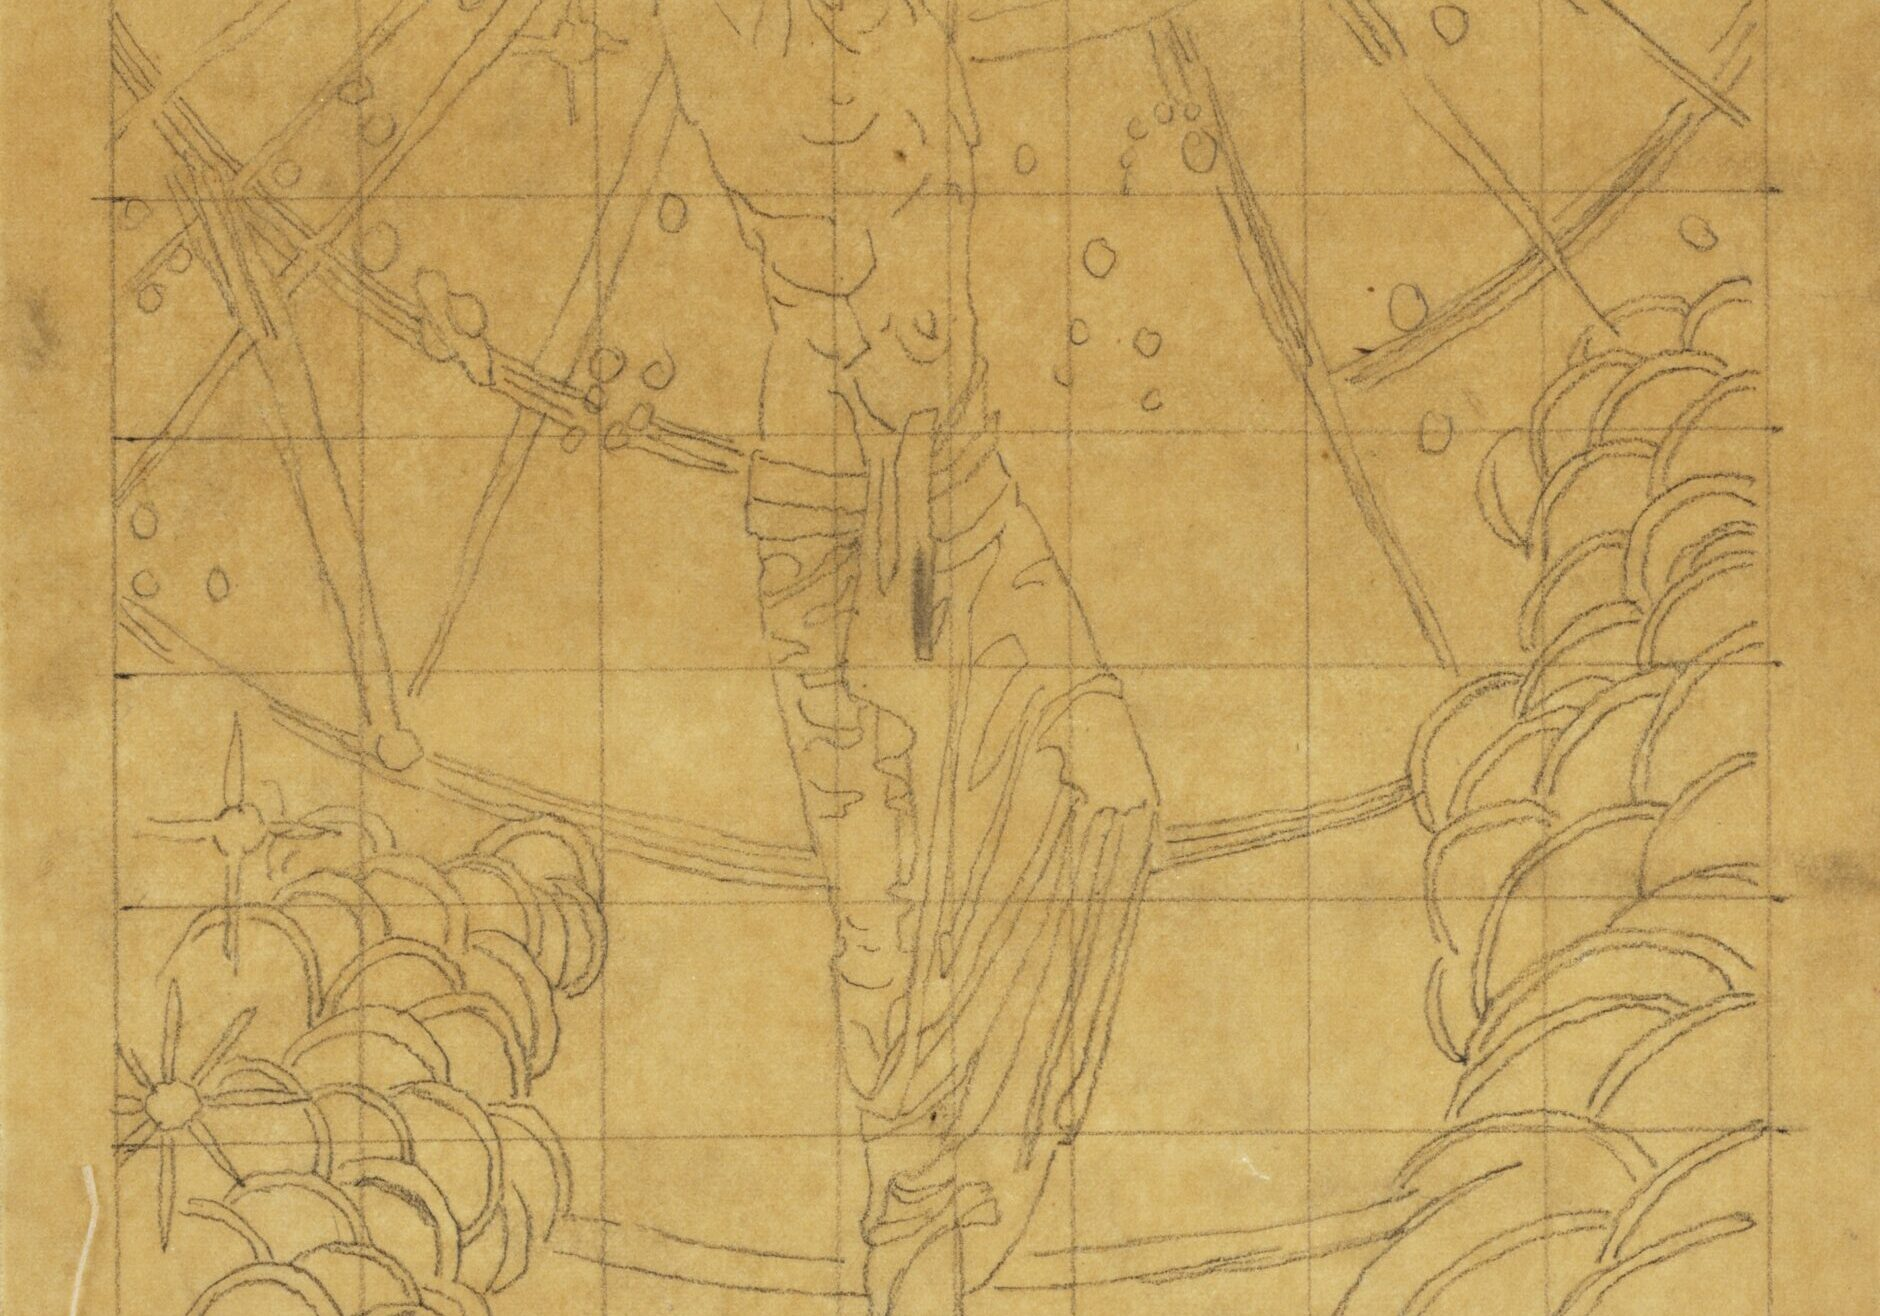 """The Great Wonder, c. 1924 Pencil on heavy tracing paper Gift of the Violet Oakley Memorial Foundation, 1982.36.9  As a leading painter during the art movement known as the American Renaissance (ca. 1876- 1917), Violet Oakley was interested in medieval-revivalism, which inspired her designs for both The Great Wonder triptych and an accompanying illuminated manuscript with the same title (on display nearby). This drawing is a preparatory study for the illustration of the """"woman clothed with the sun"""" in Oakley's illuminated manuscript. The pencil sketch is """"squared"""" for transfer; that is, the artist has overlaid the composition with a grid so that she could replicate her design on a larger or smaller scale without losing any details. Oakley uses careful and economical strokes to depict the Apocalyptic Woman, who represents the Christian Church, triumphing over the dragon, which symbolizes Satan. Oakley's composition fit well with the donor of The Great Wonder triptych, Louise Meigs's wish that the work """"express a noble idea of womanhood."""" And, as Oakley herself later observed, the painting """"unveils the high idea of Woman and the offspring of her own labors."""""""